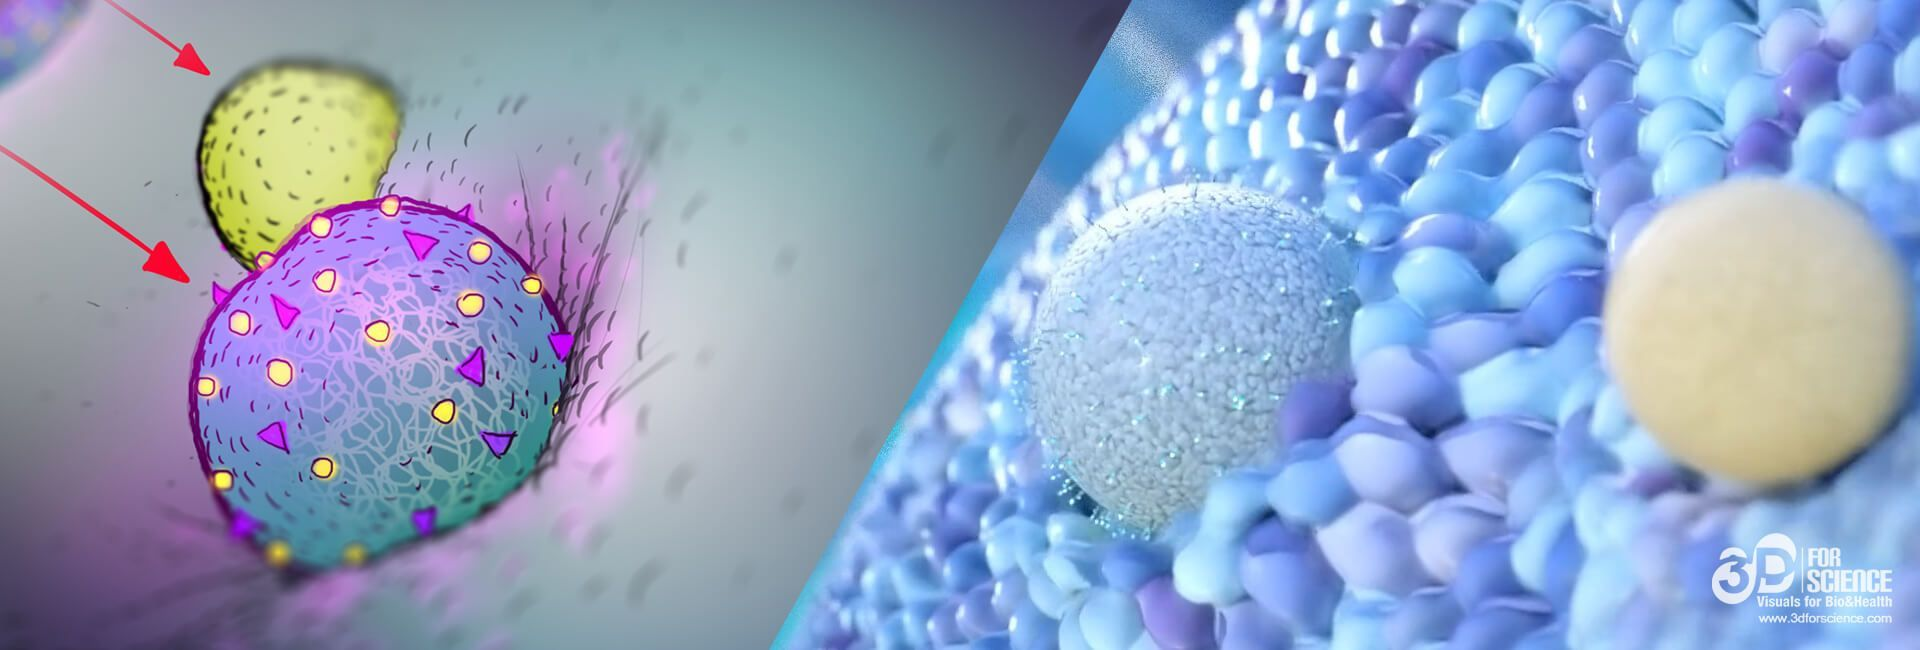 scientific animation used in healthcare industry